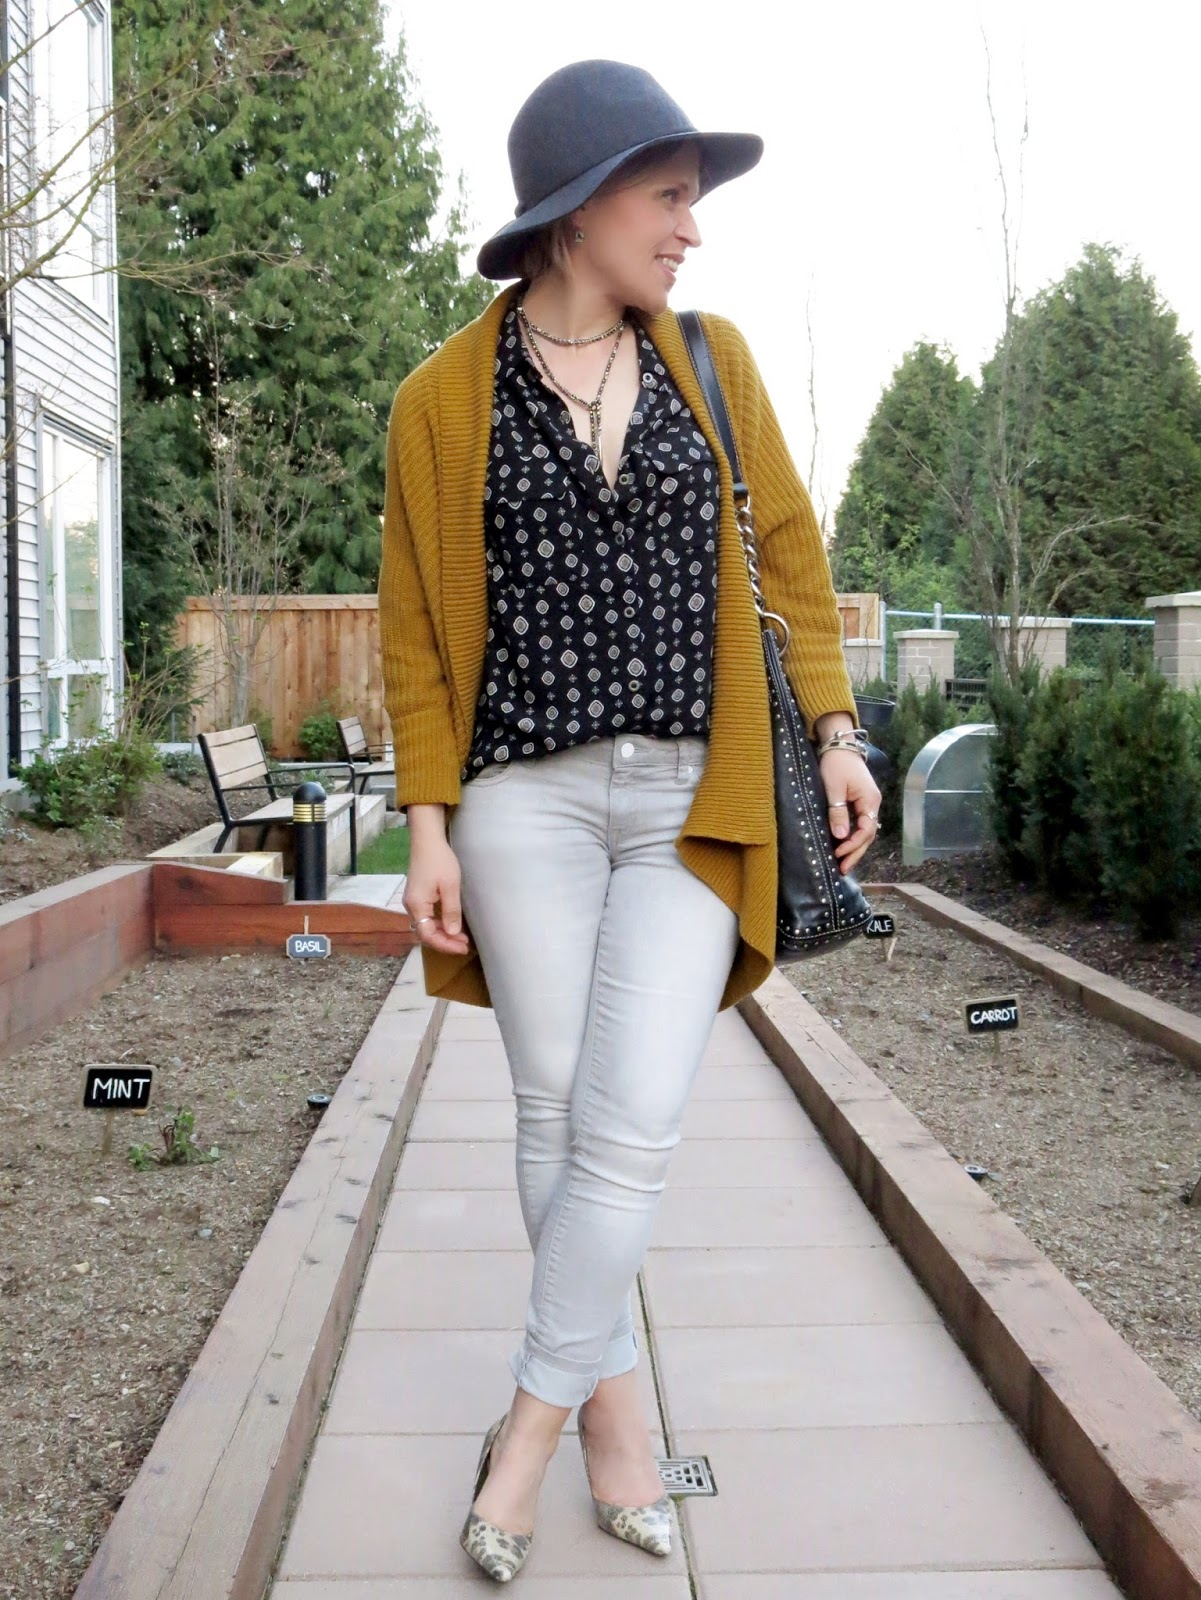 styling a black patterned shirt with grey skinnies, reptile pumps, a drapey mustard cardigan, and a floppy hat